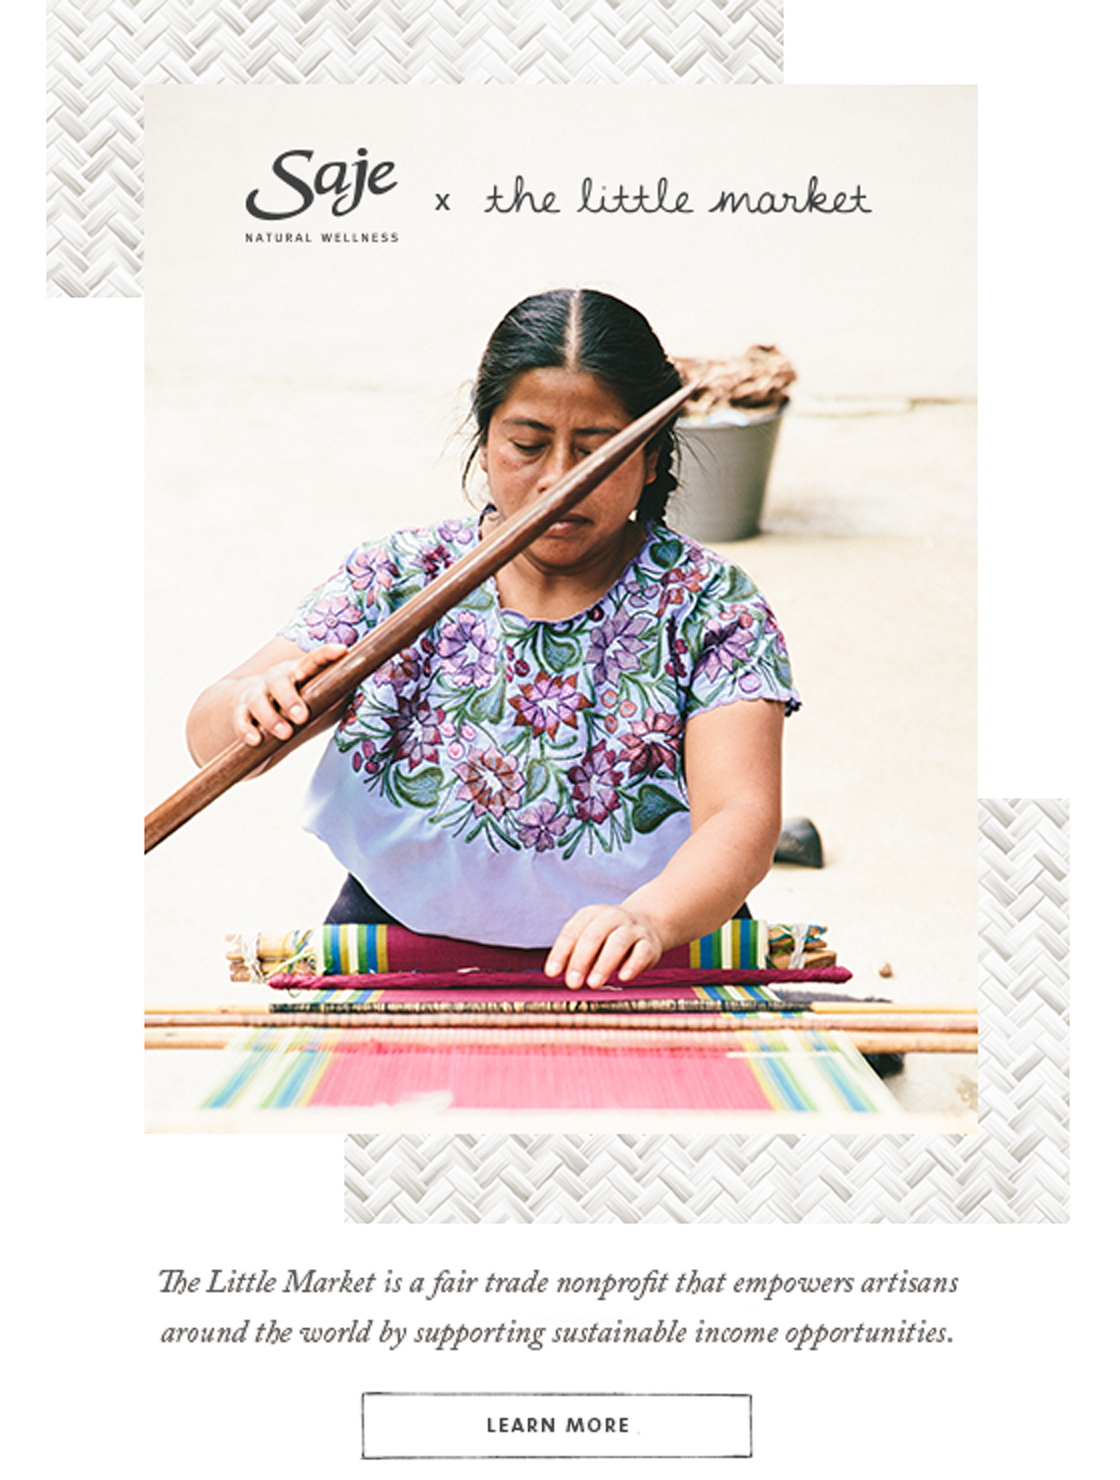 The Little Market is a fair trade nonprofit that empowers artisans around the world by supporting sustainable income opportunities